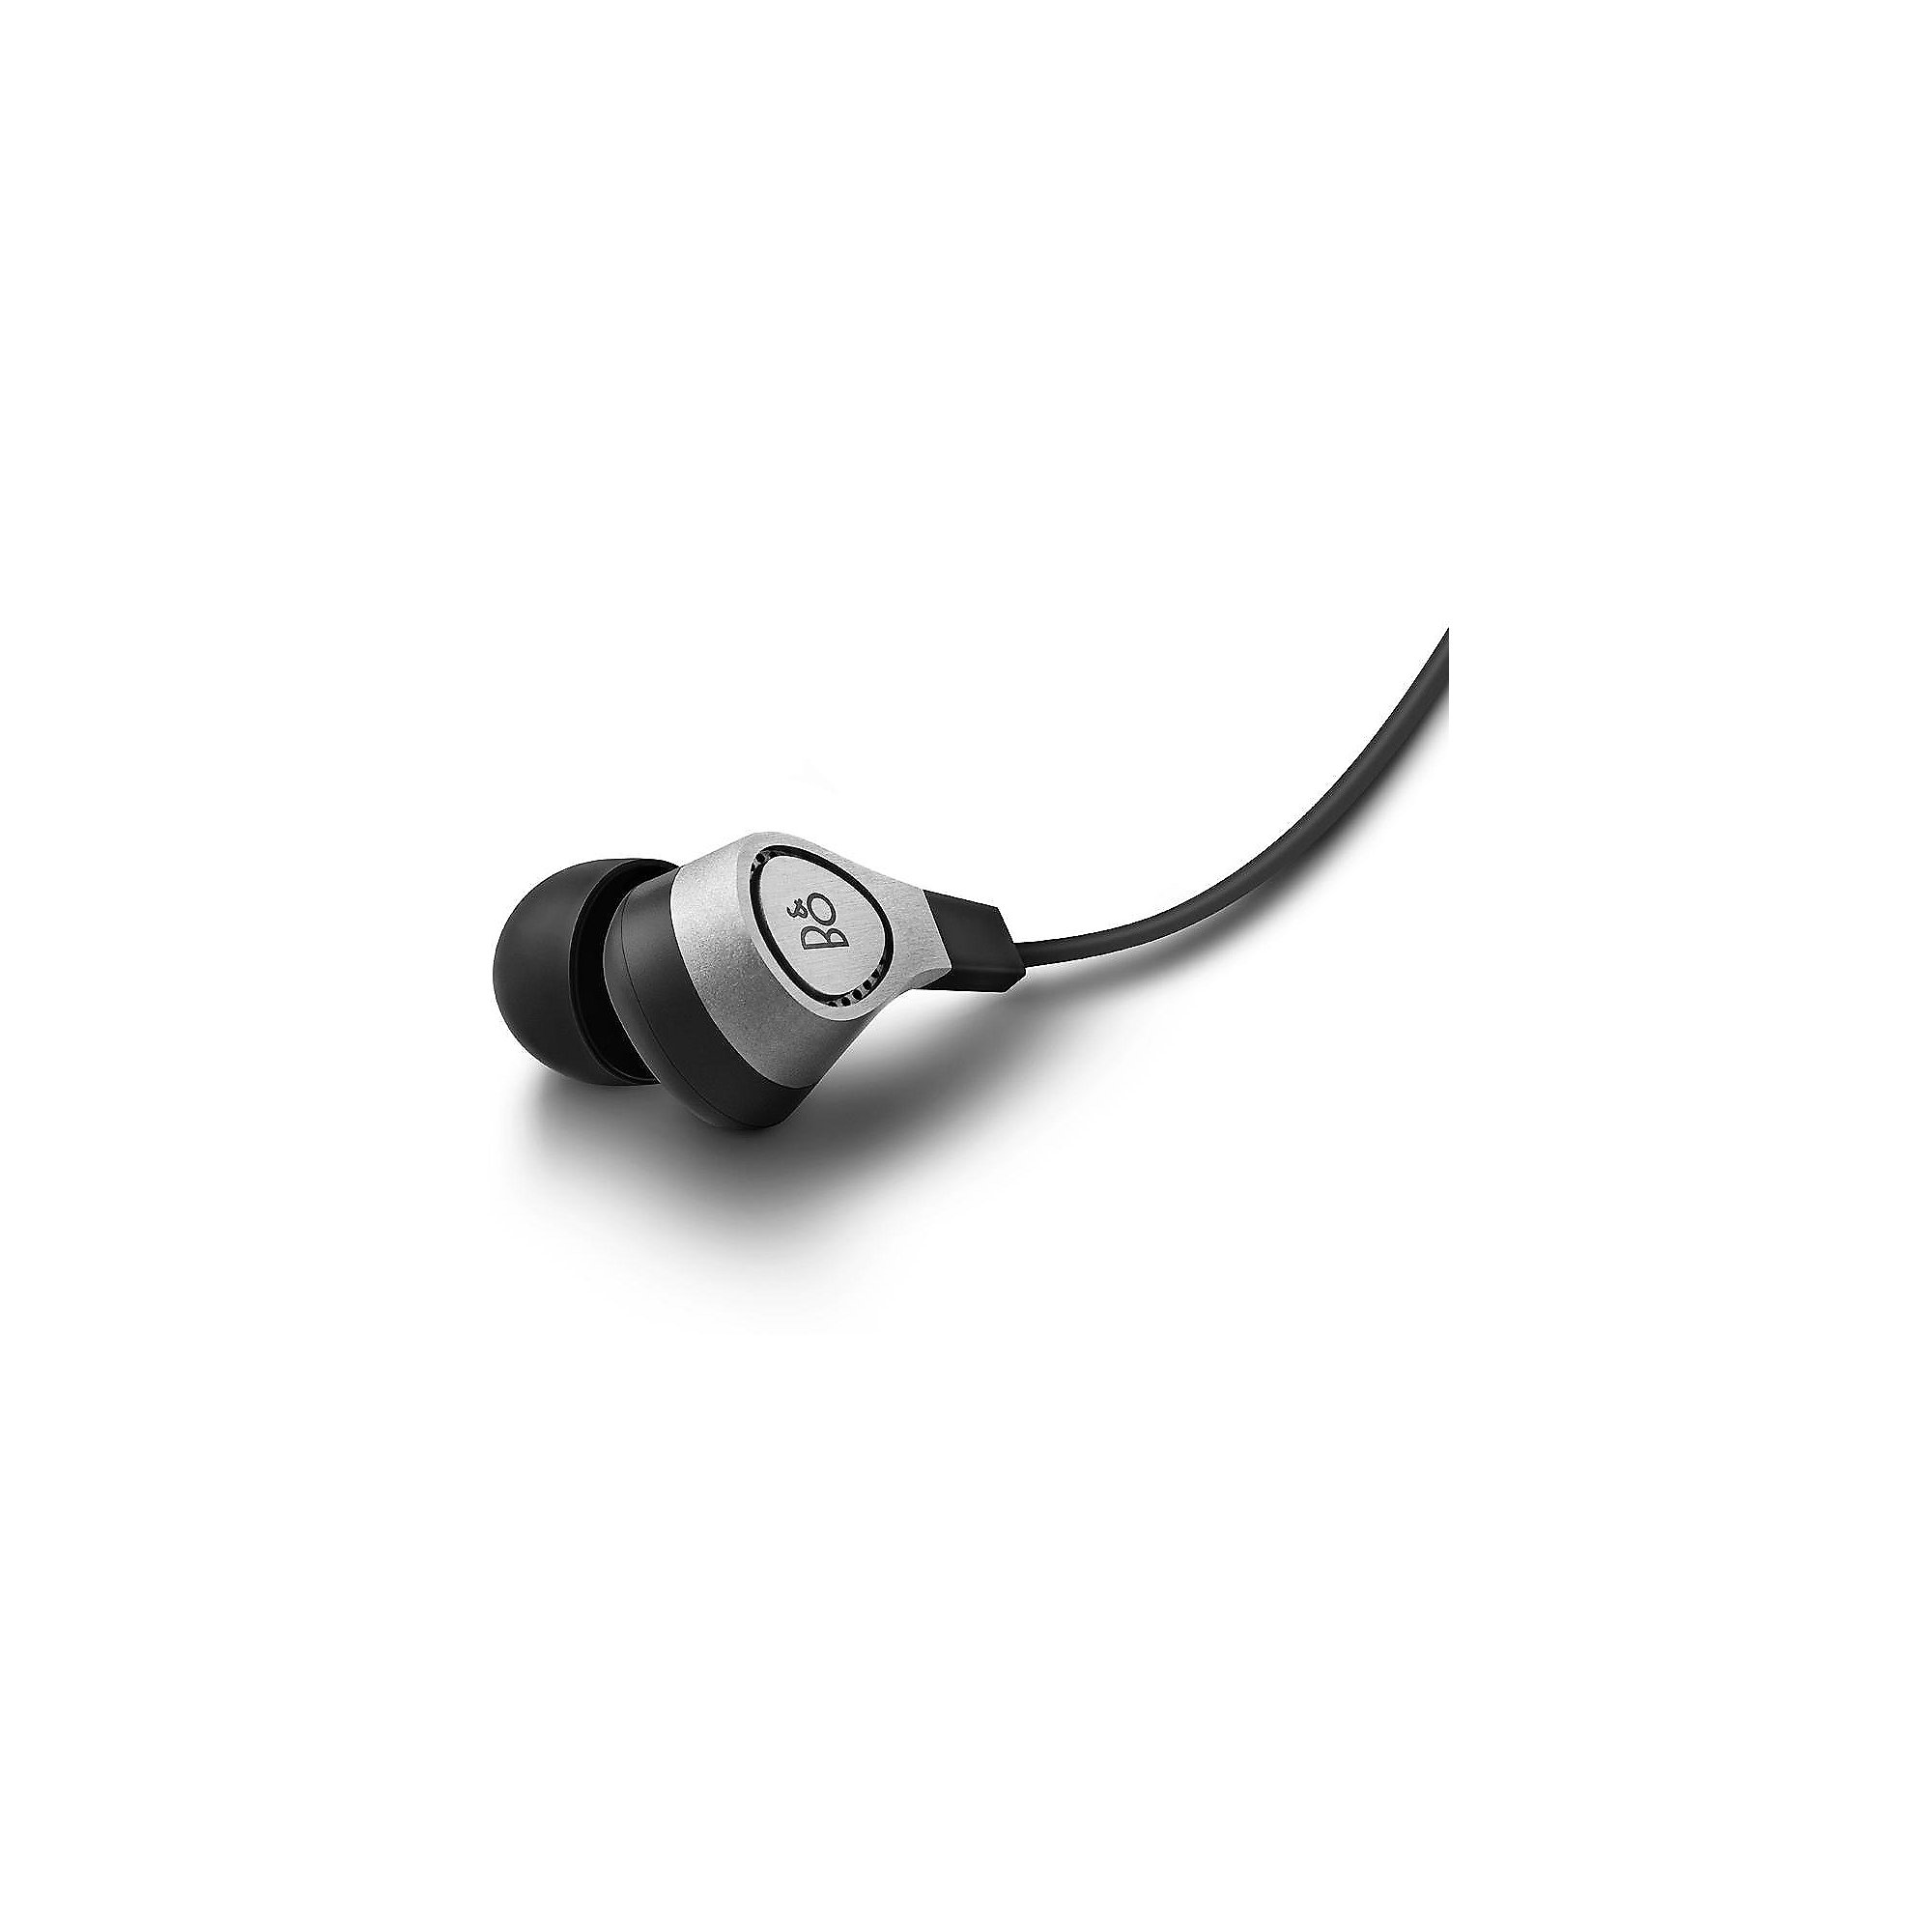 B&O PLAY BeoPlay H3 2. Generation In-Ear Kopfhörer mit Headsetfunktion natural